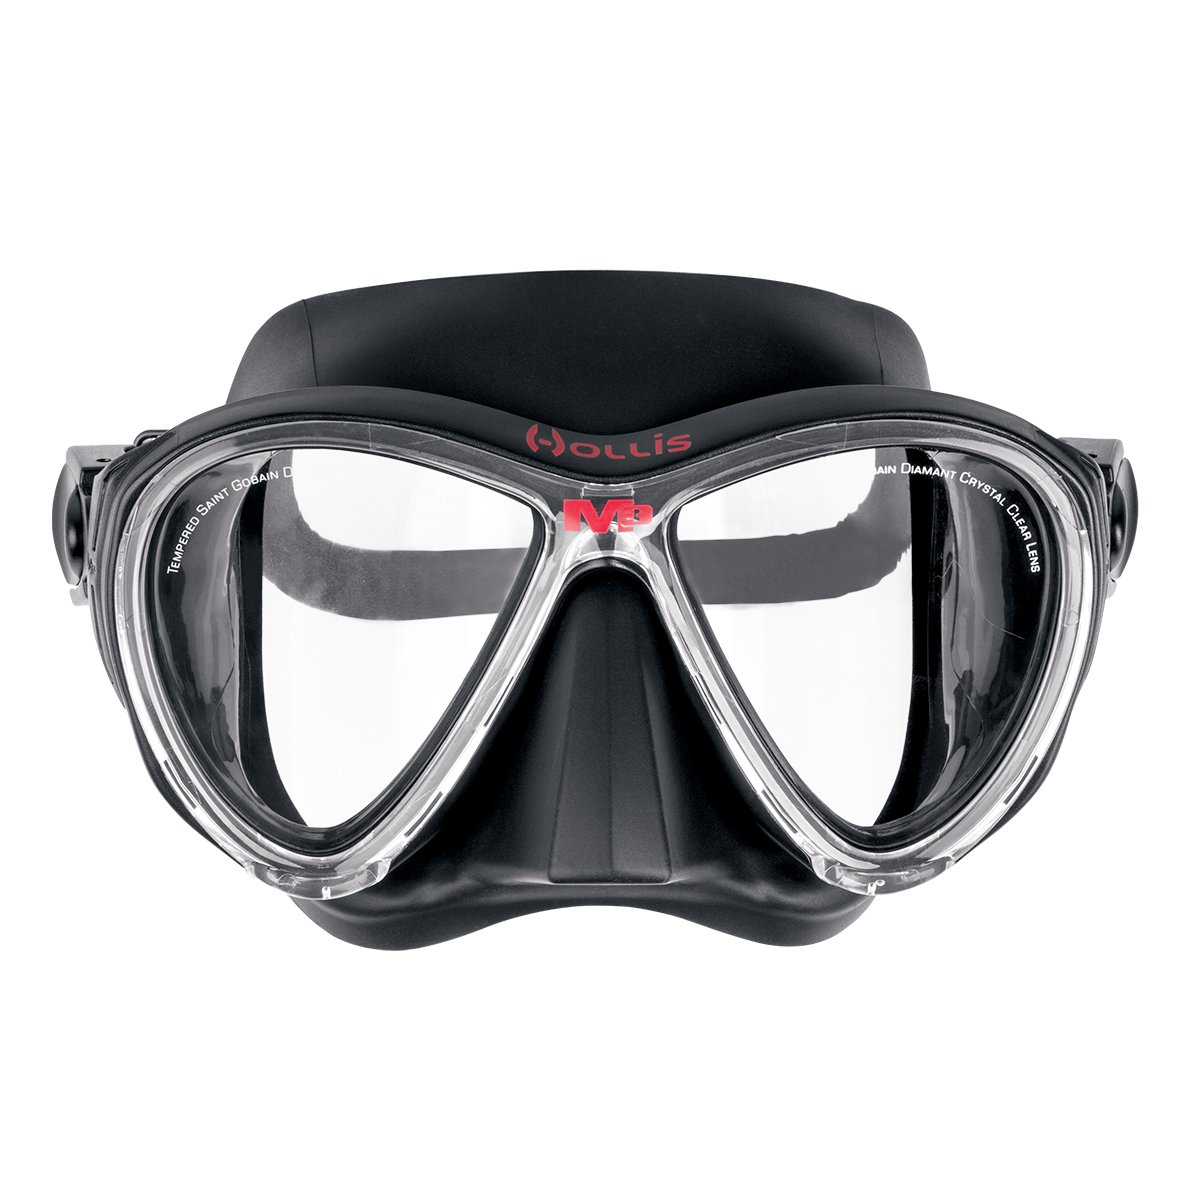 Hollis M3 Mask with GoPro Clip